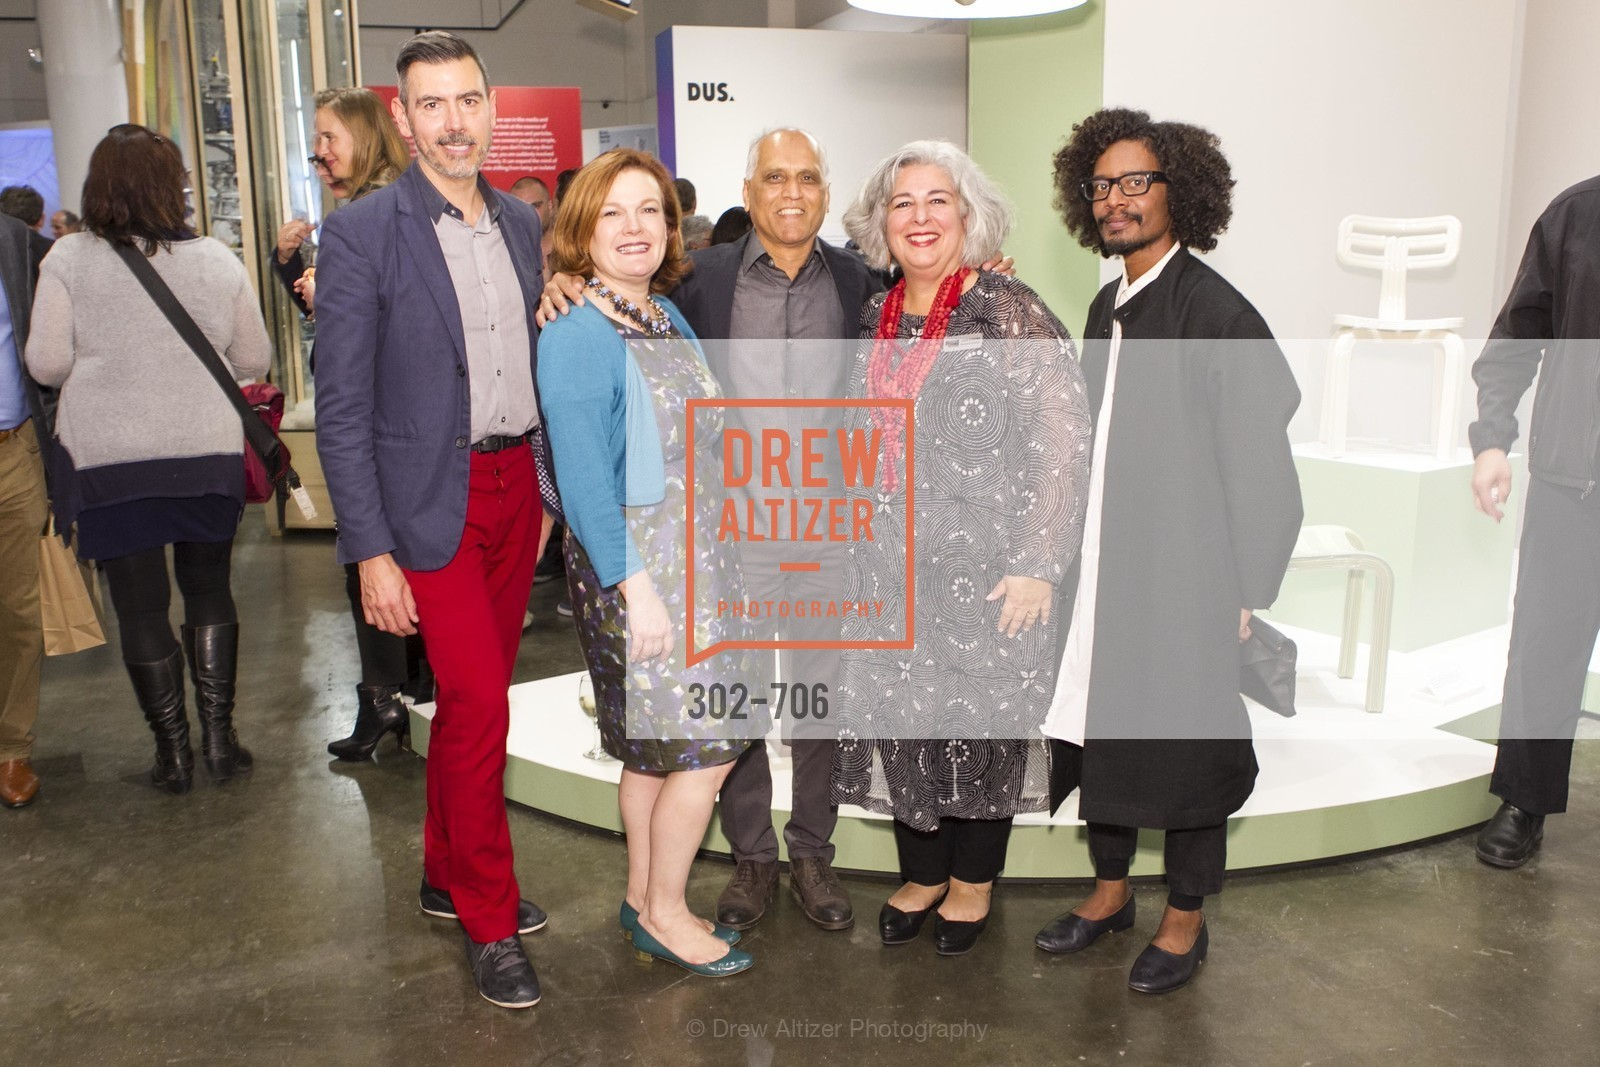 John Macy, Jennifer Raiser, Zahid Sardar, JoAnn Edwards, Yani Alexi Dominguez, Exhibit Opening at the MUSEUM OF CRAFT AND DESIGN - Hands Off: New Dutch Design at the Confluence of Technology & Craft, US, May 7th, 2015,Drew Altizer, Drew Altizer Photography, full-service agency, private events, San Francisco photographer, photographer california